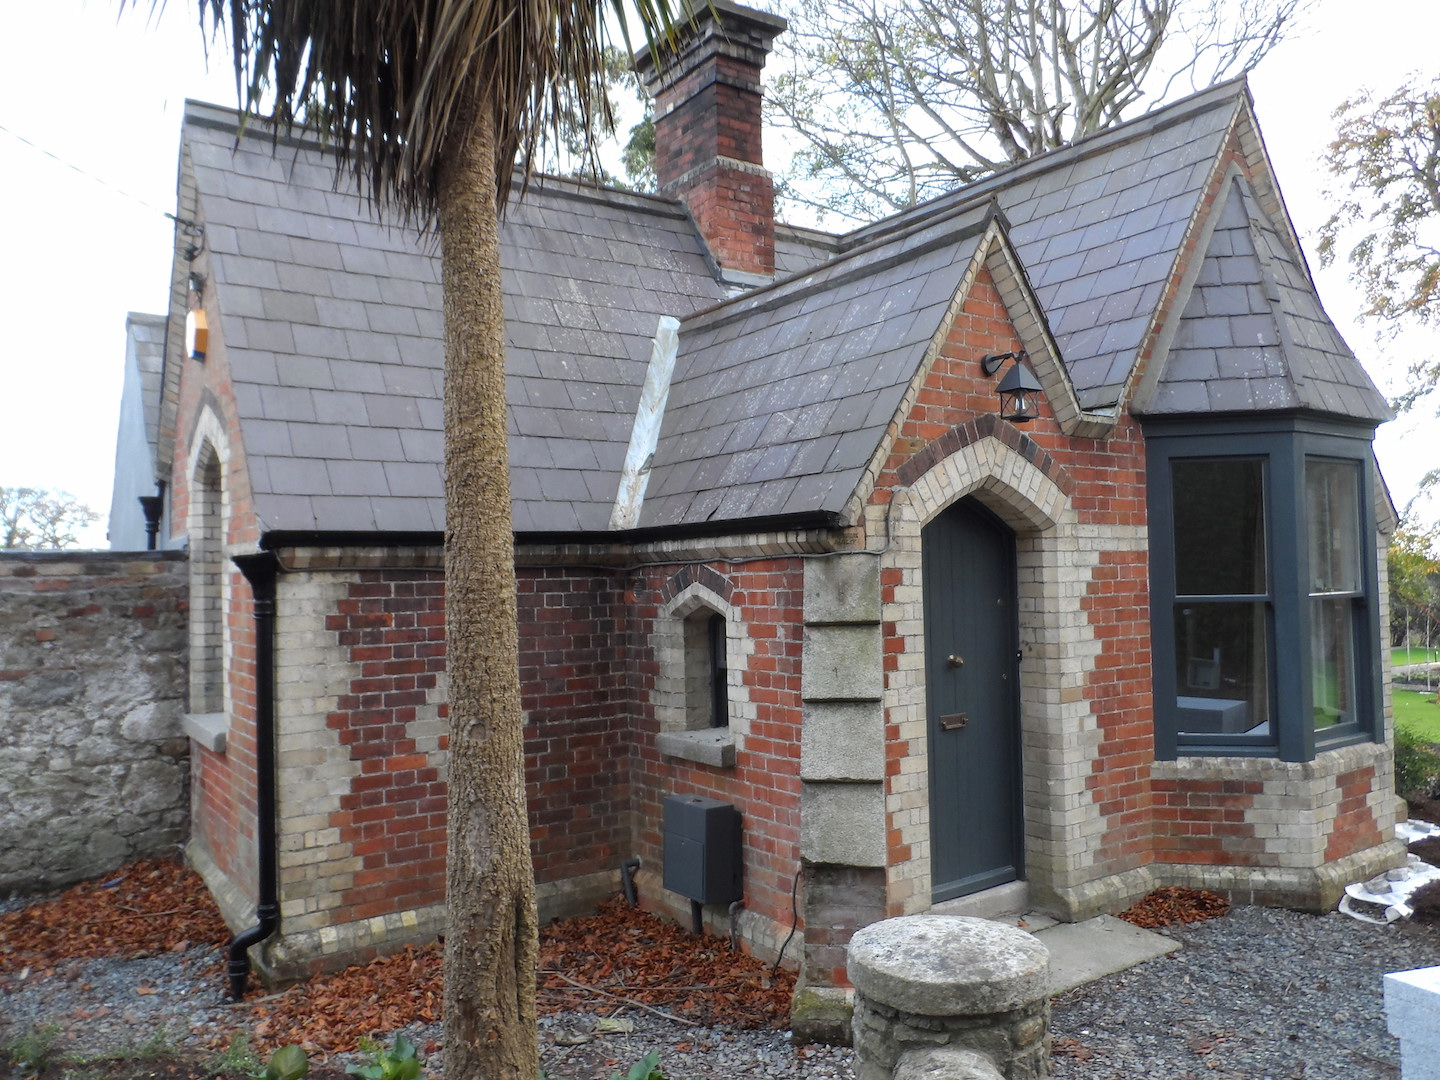 wicklow garden east the rental brittas to ireland by rent cottages back county country cottage village dublin cornagower bay sea in